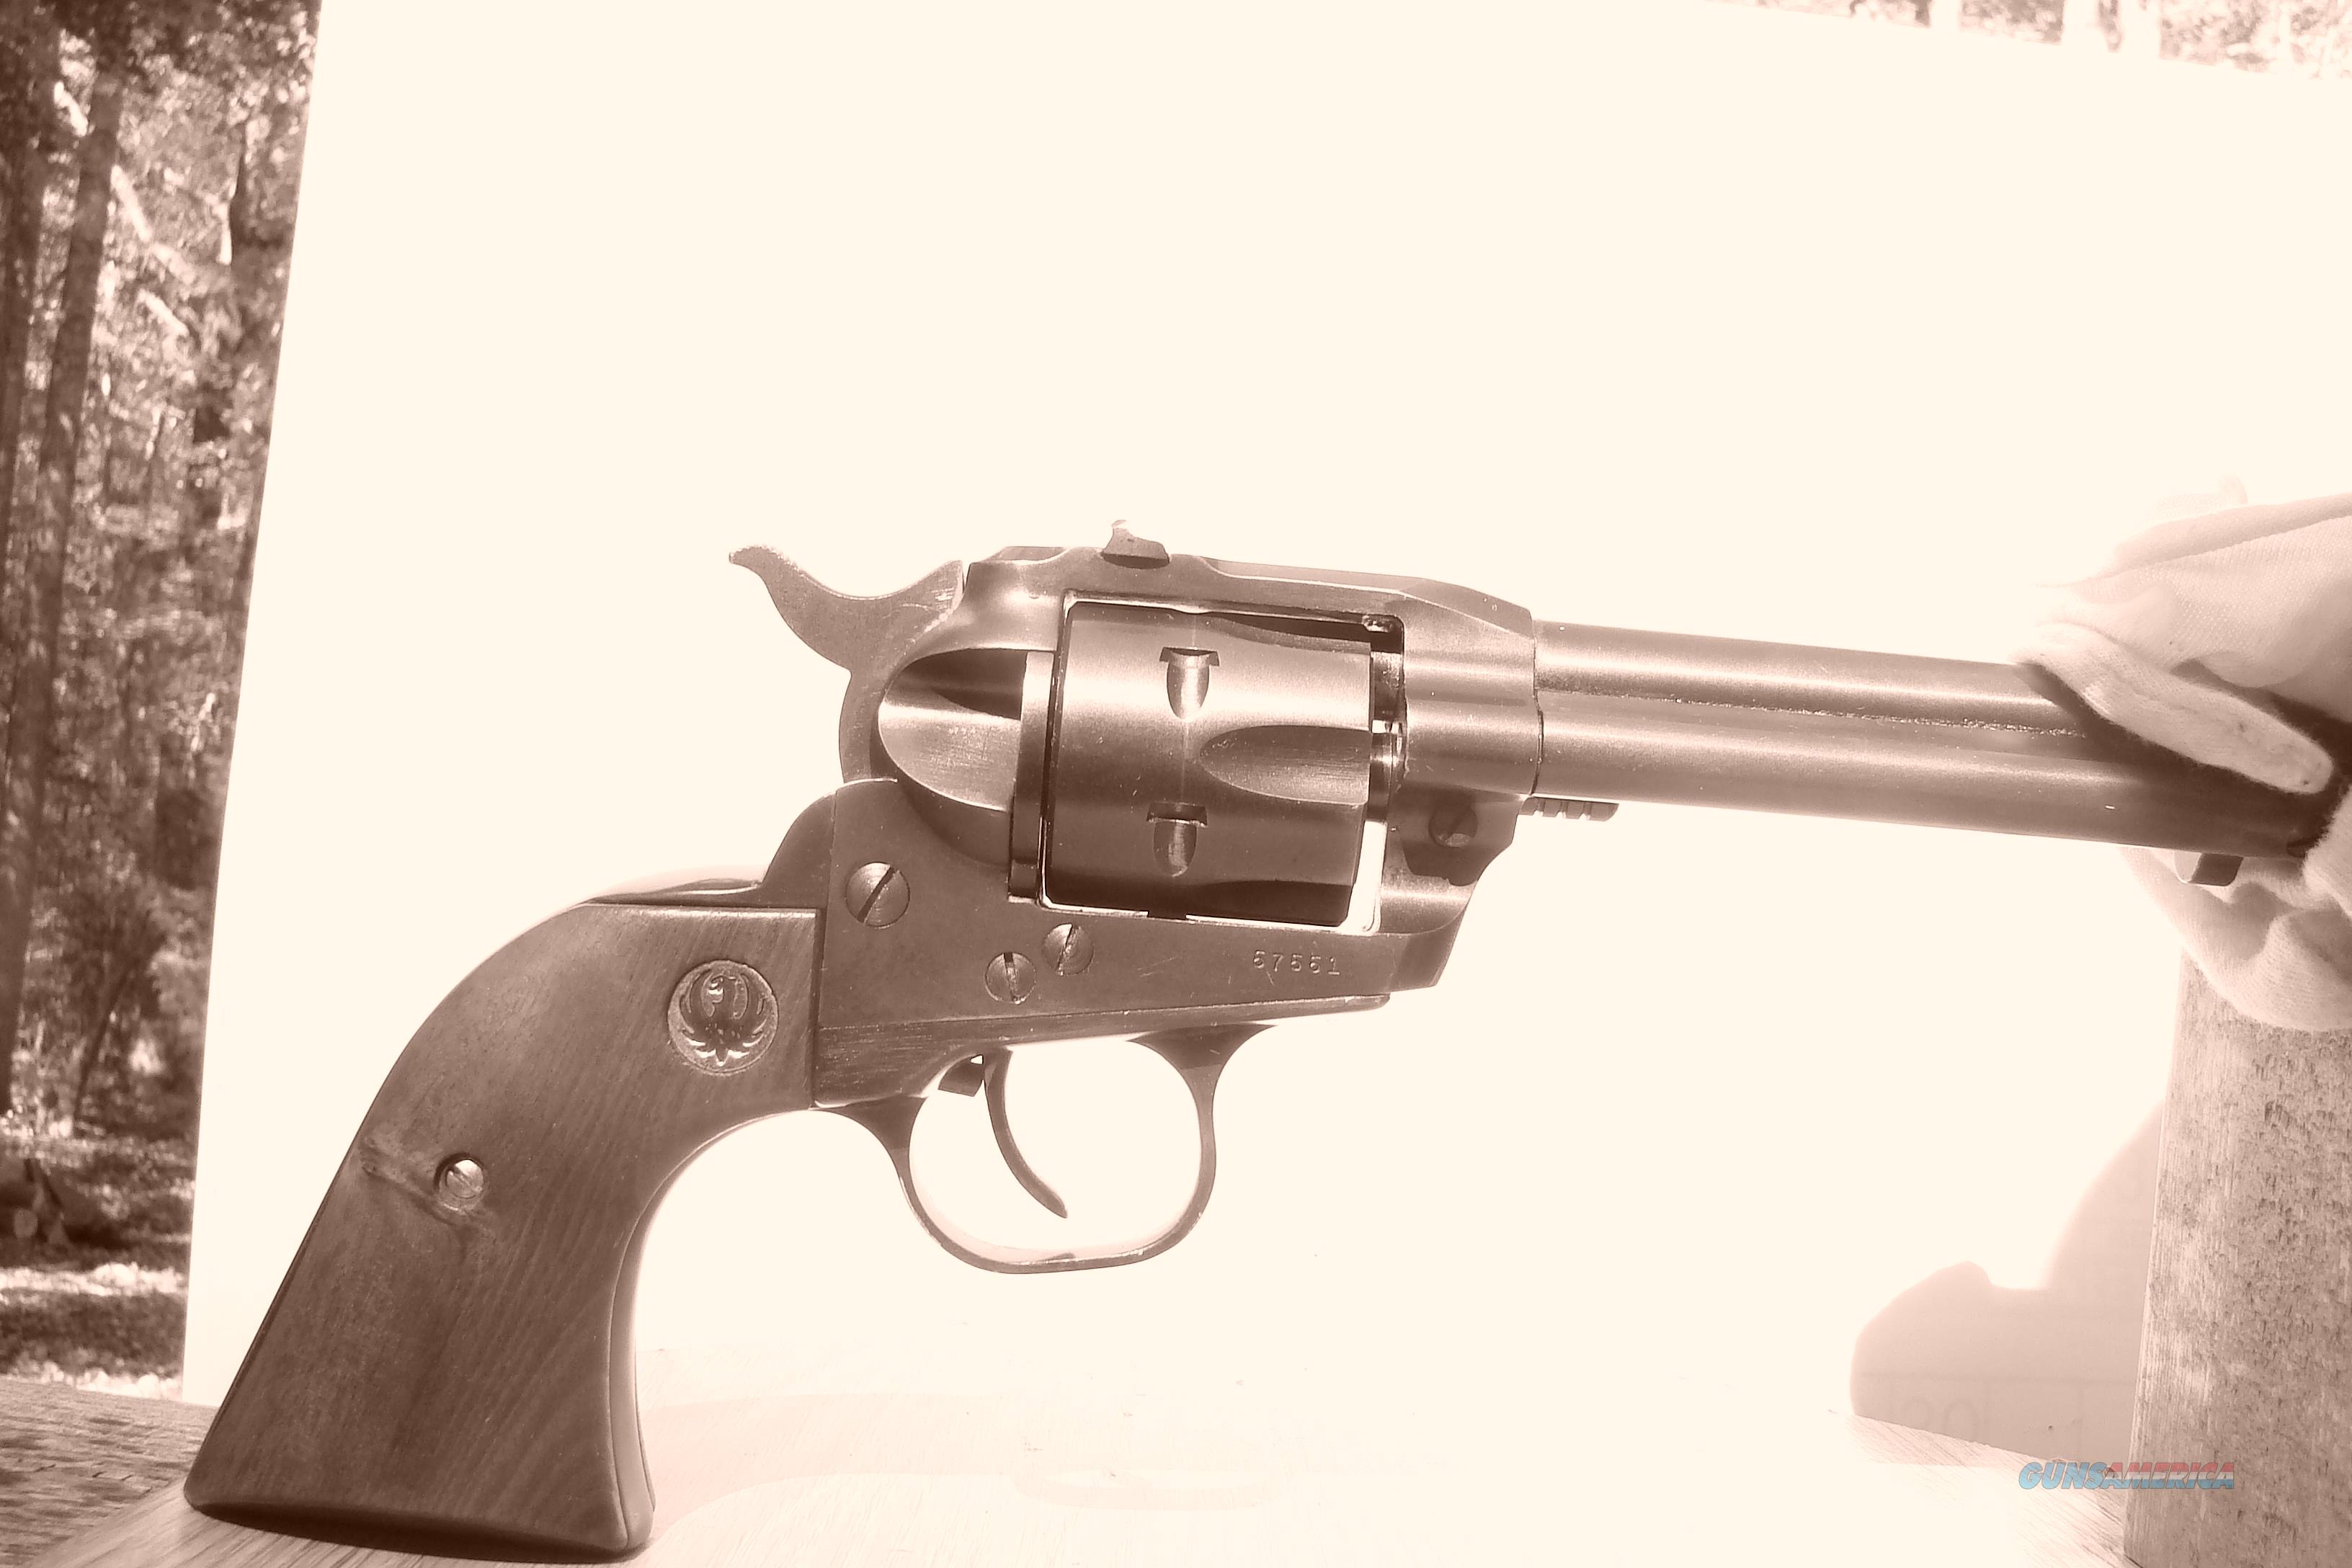 Ruger Single Six  Guns > Pistols > Ruger Single Action Revolvers > Single Six Type